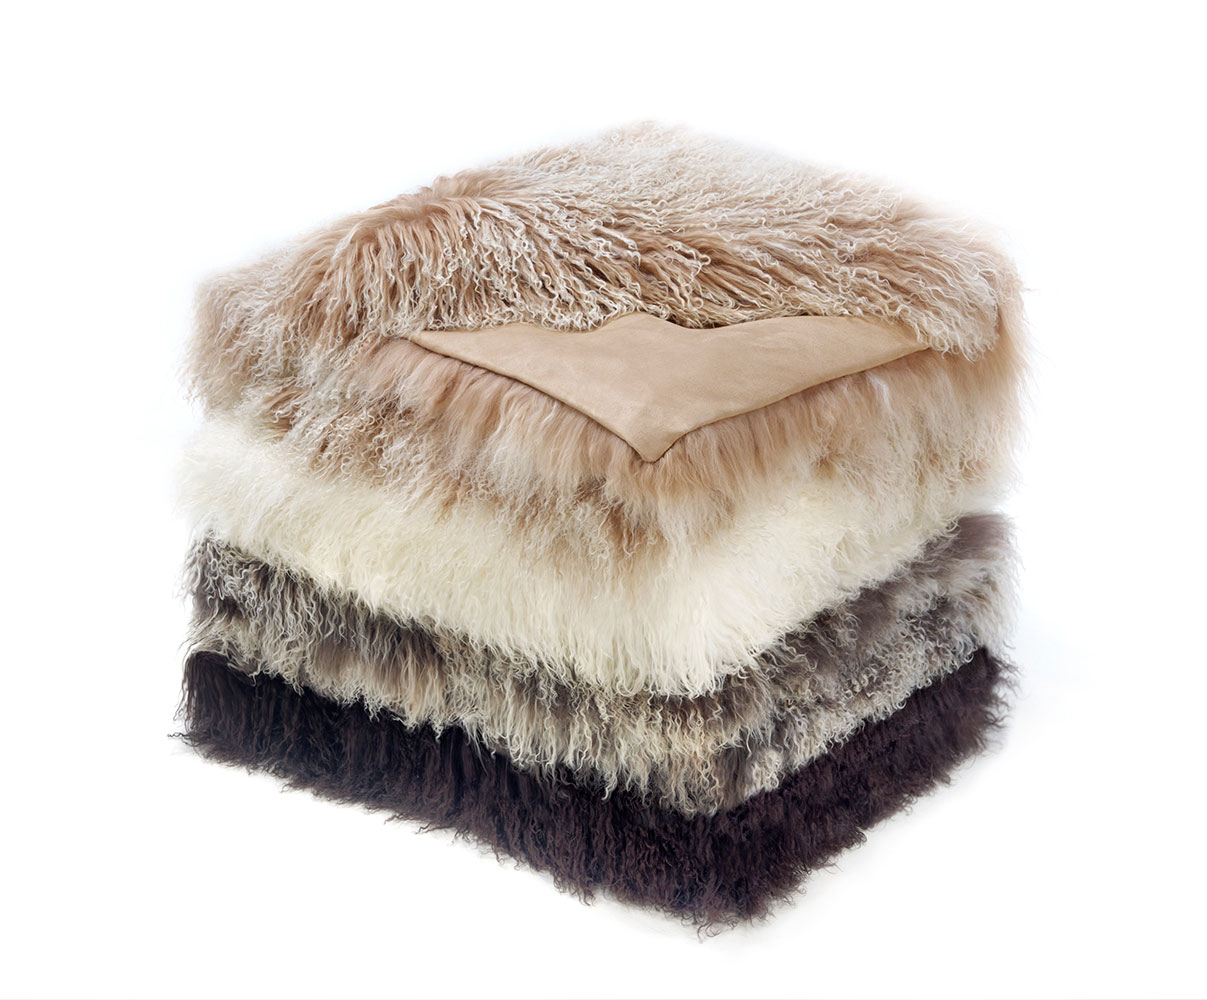 cowhide sofa throws de canto com chaise retratil throw pillows acid finished hair on cushions with